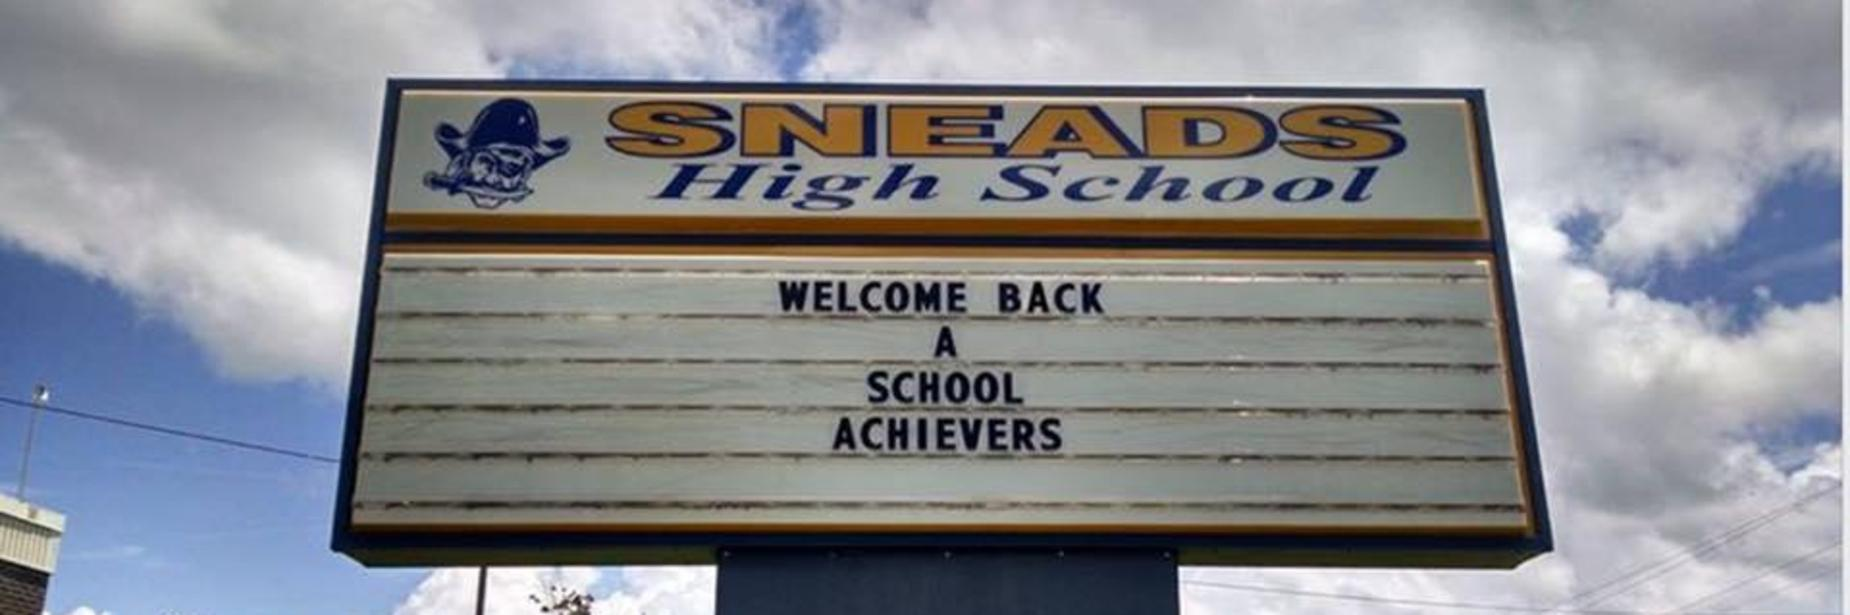 Sneads High School Sign